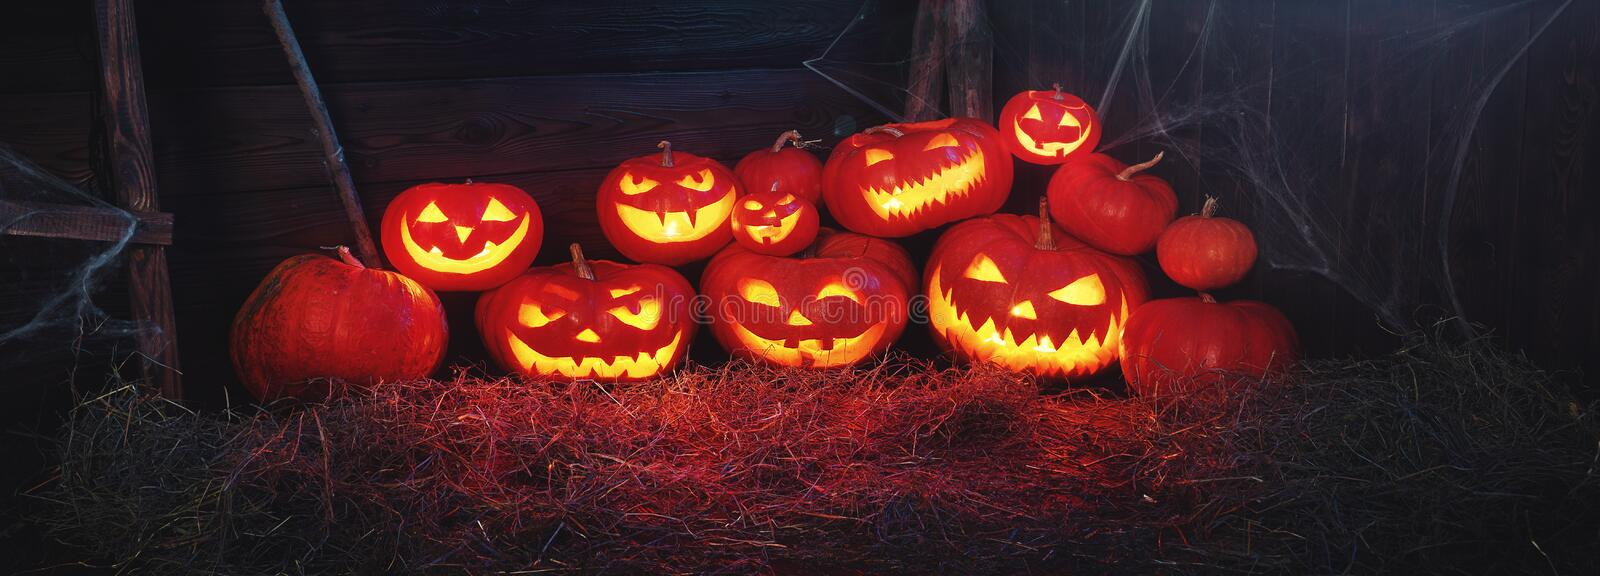 Spooky halloween background. scary pumpkin with burning eyes and. Smiles in the night royalty free stock photography